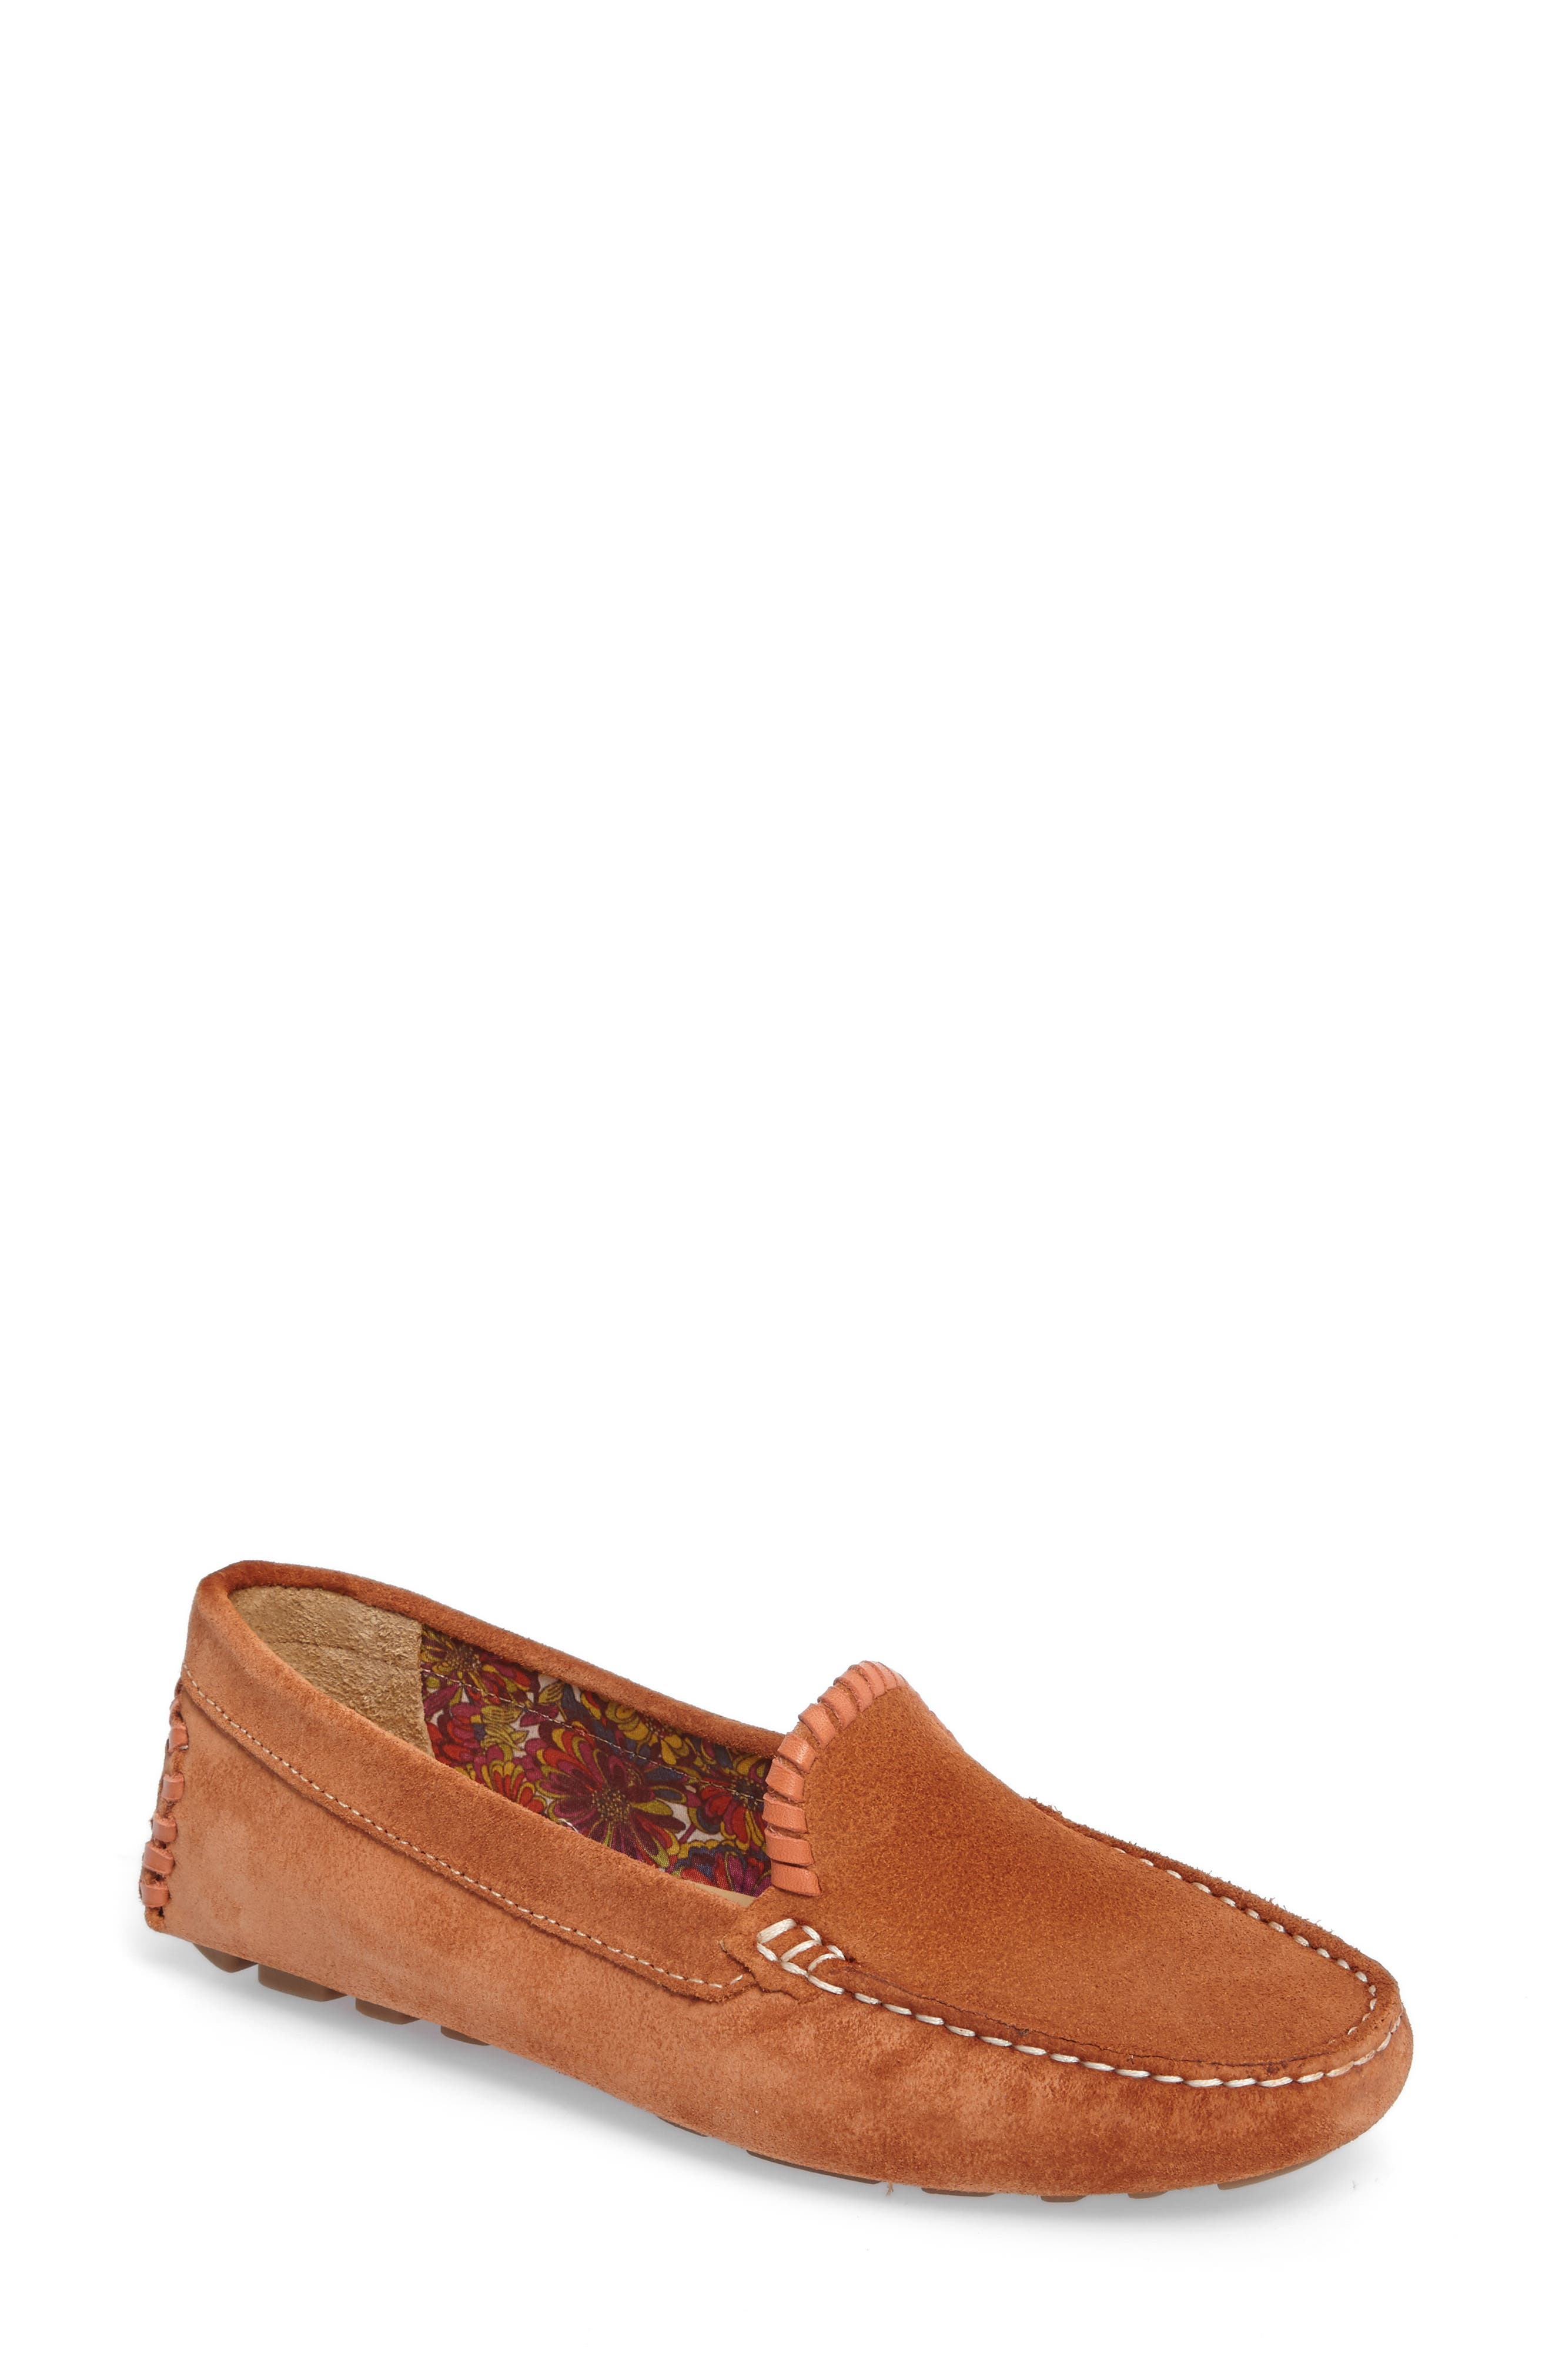 Main Image - Jack Rogers Taylor Driving Loafer (Women)